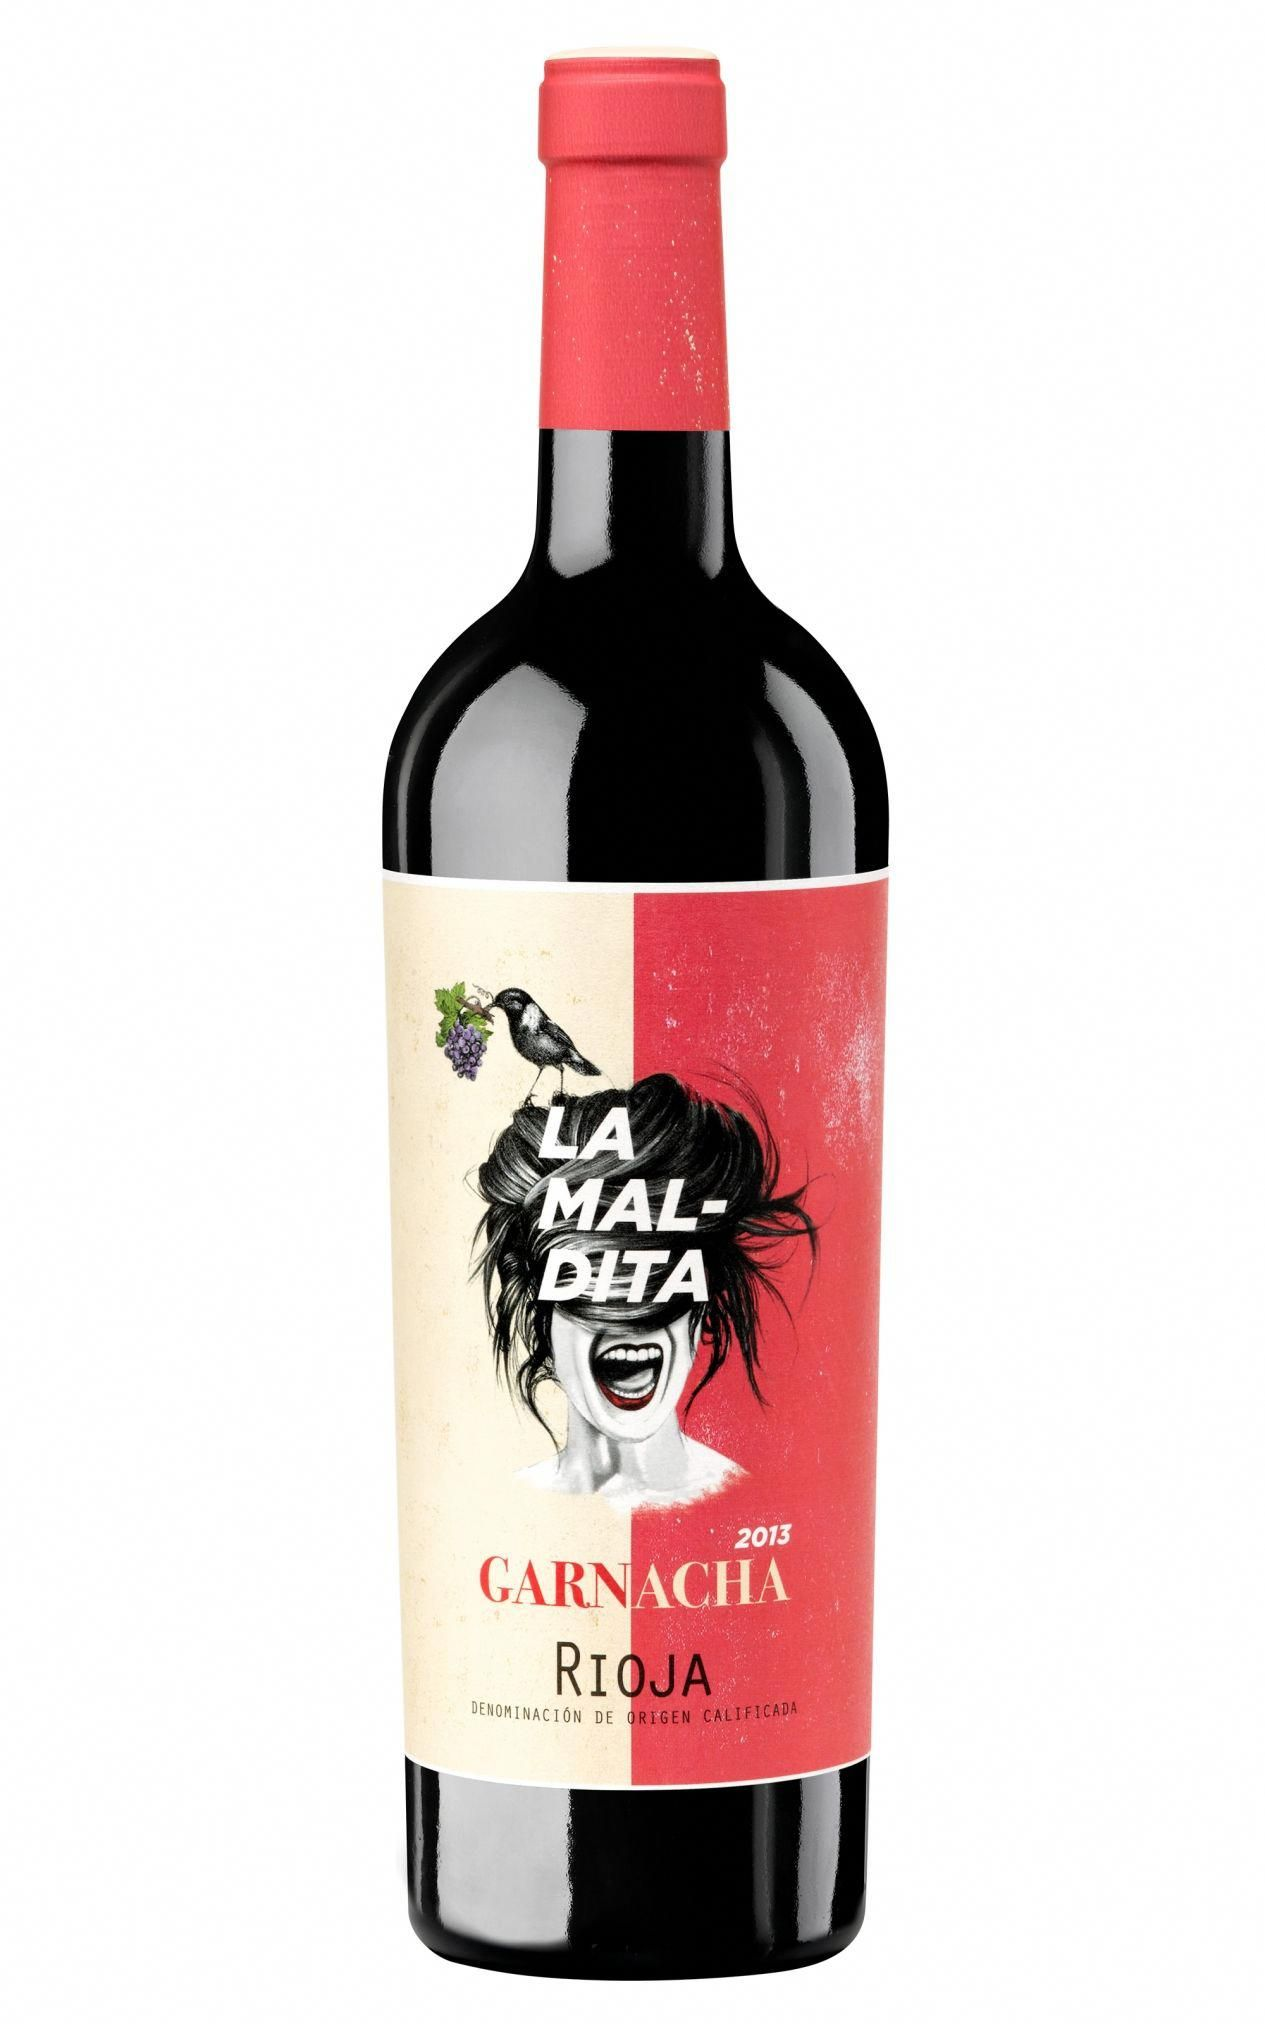 Calcco Packaging Vinedos La Maldita La Maldita D O Ca Rioja Logrono La Rioja Winelabels Wine Bottle Design Wine Packaging Wine Brands